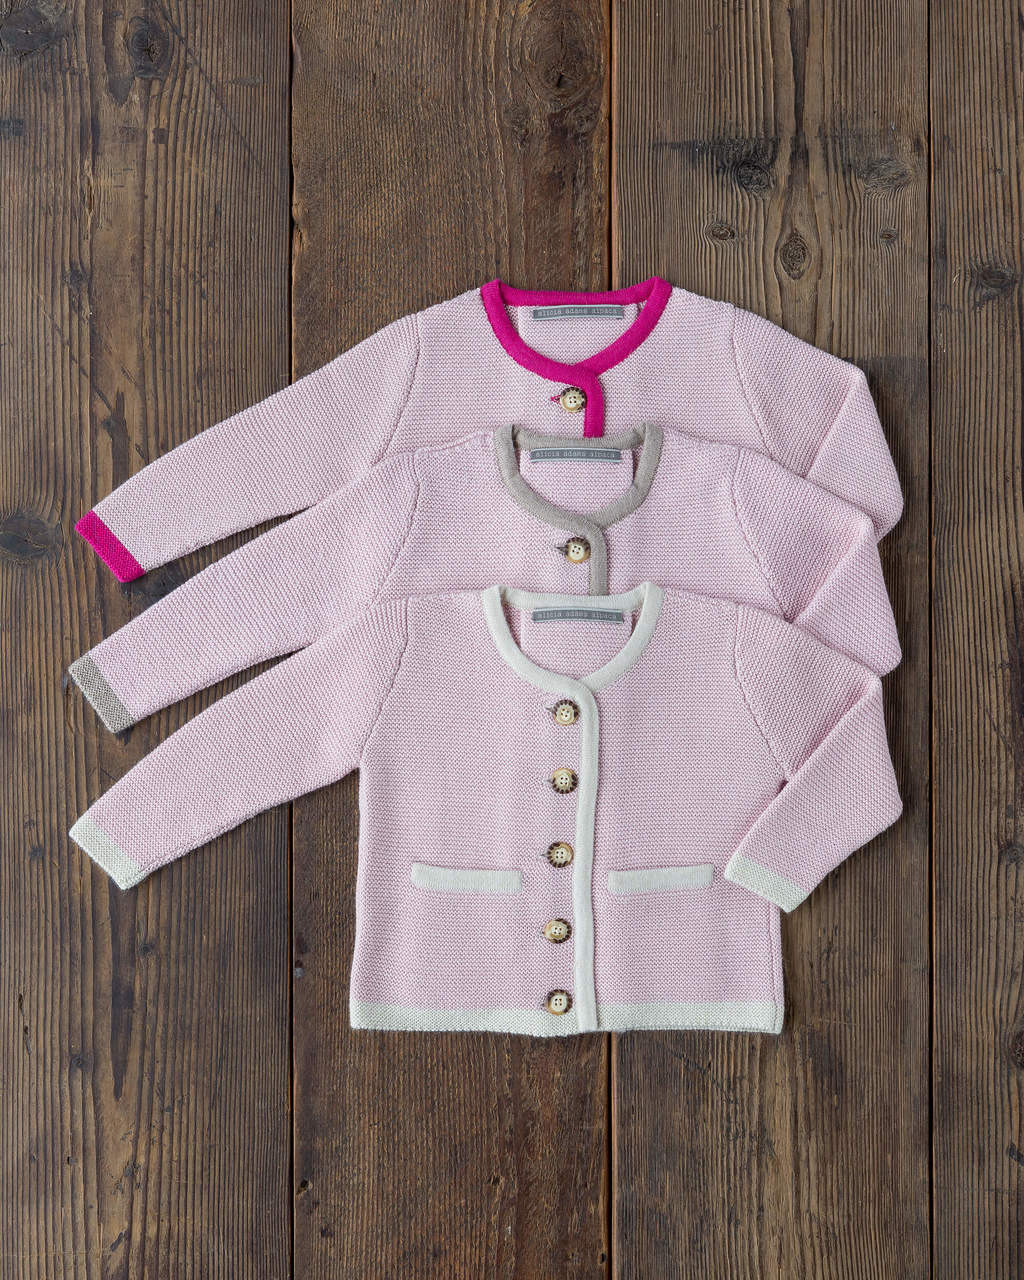 Alicia Adams Alpaca Salzburg Cardigan, alpaca baby clothes, alpaca sweater, baby alpaca sweater, alpaca clothing, light pink alpaca sweater